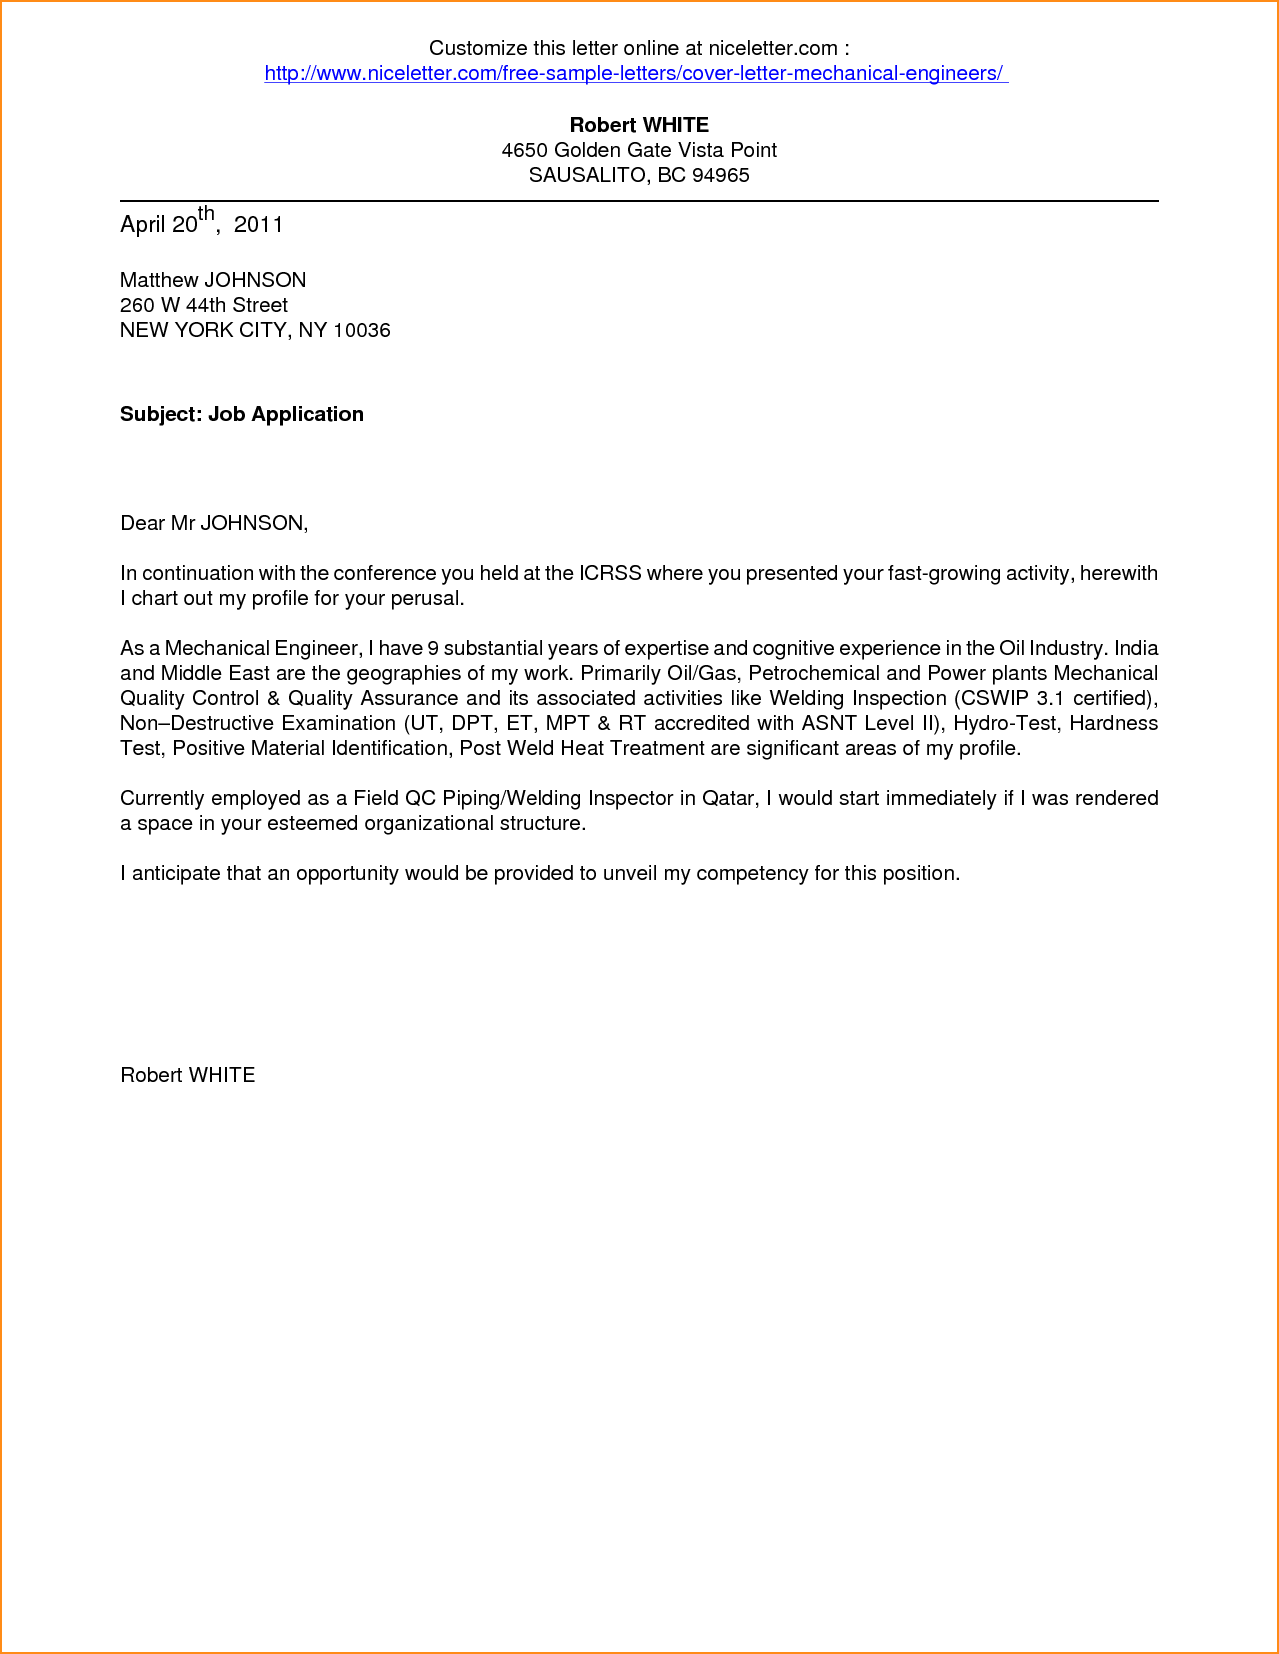 Covering Letter Format For Resume Application For Employment Cover Letter Application